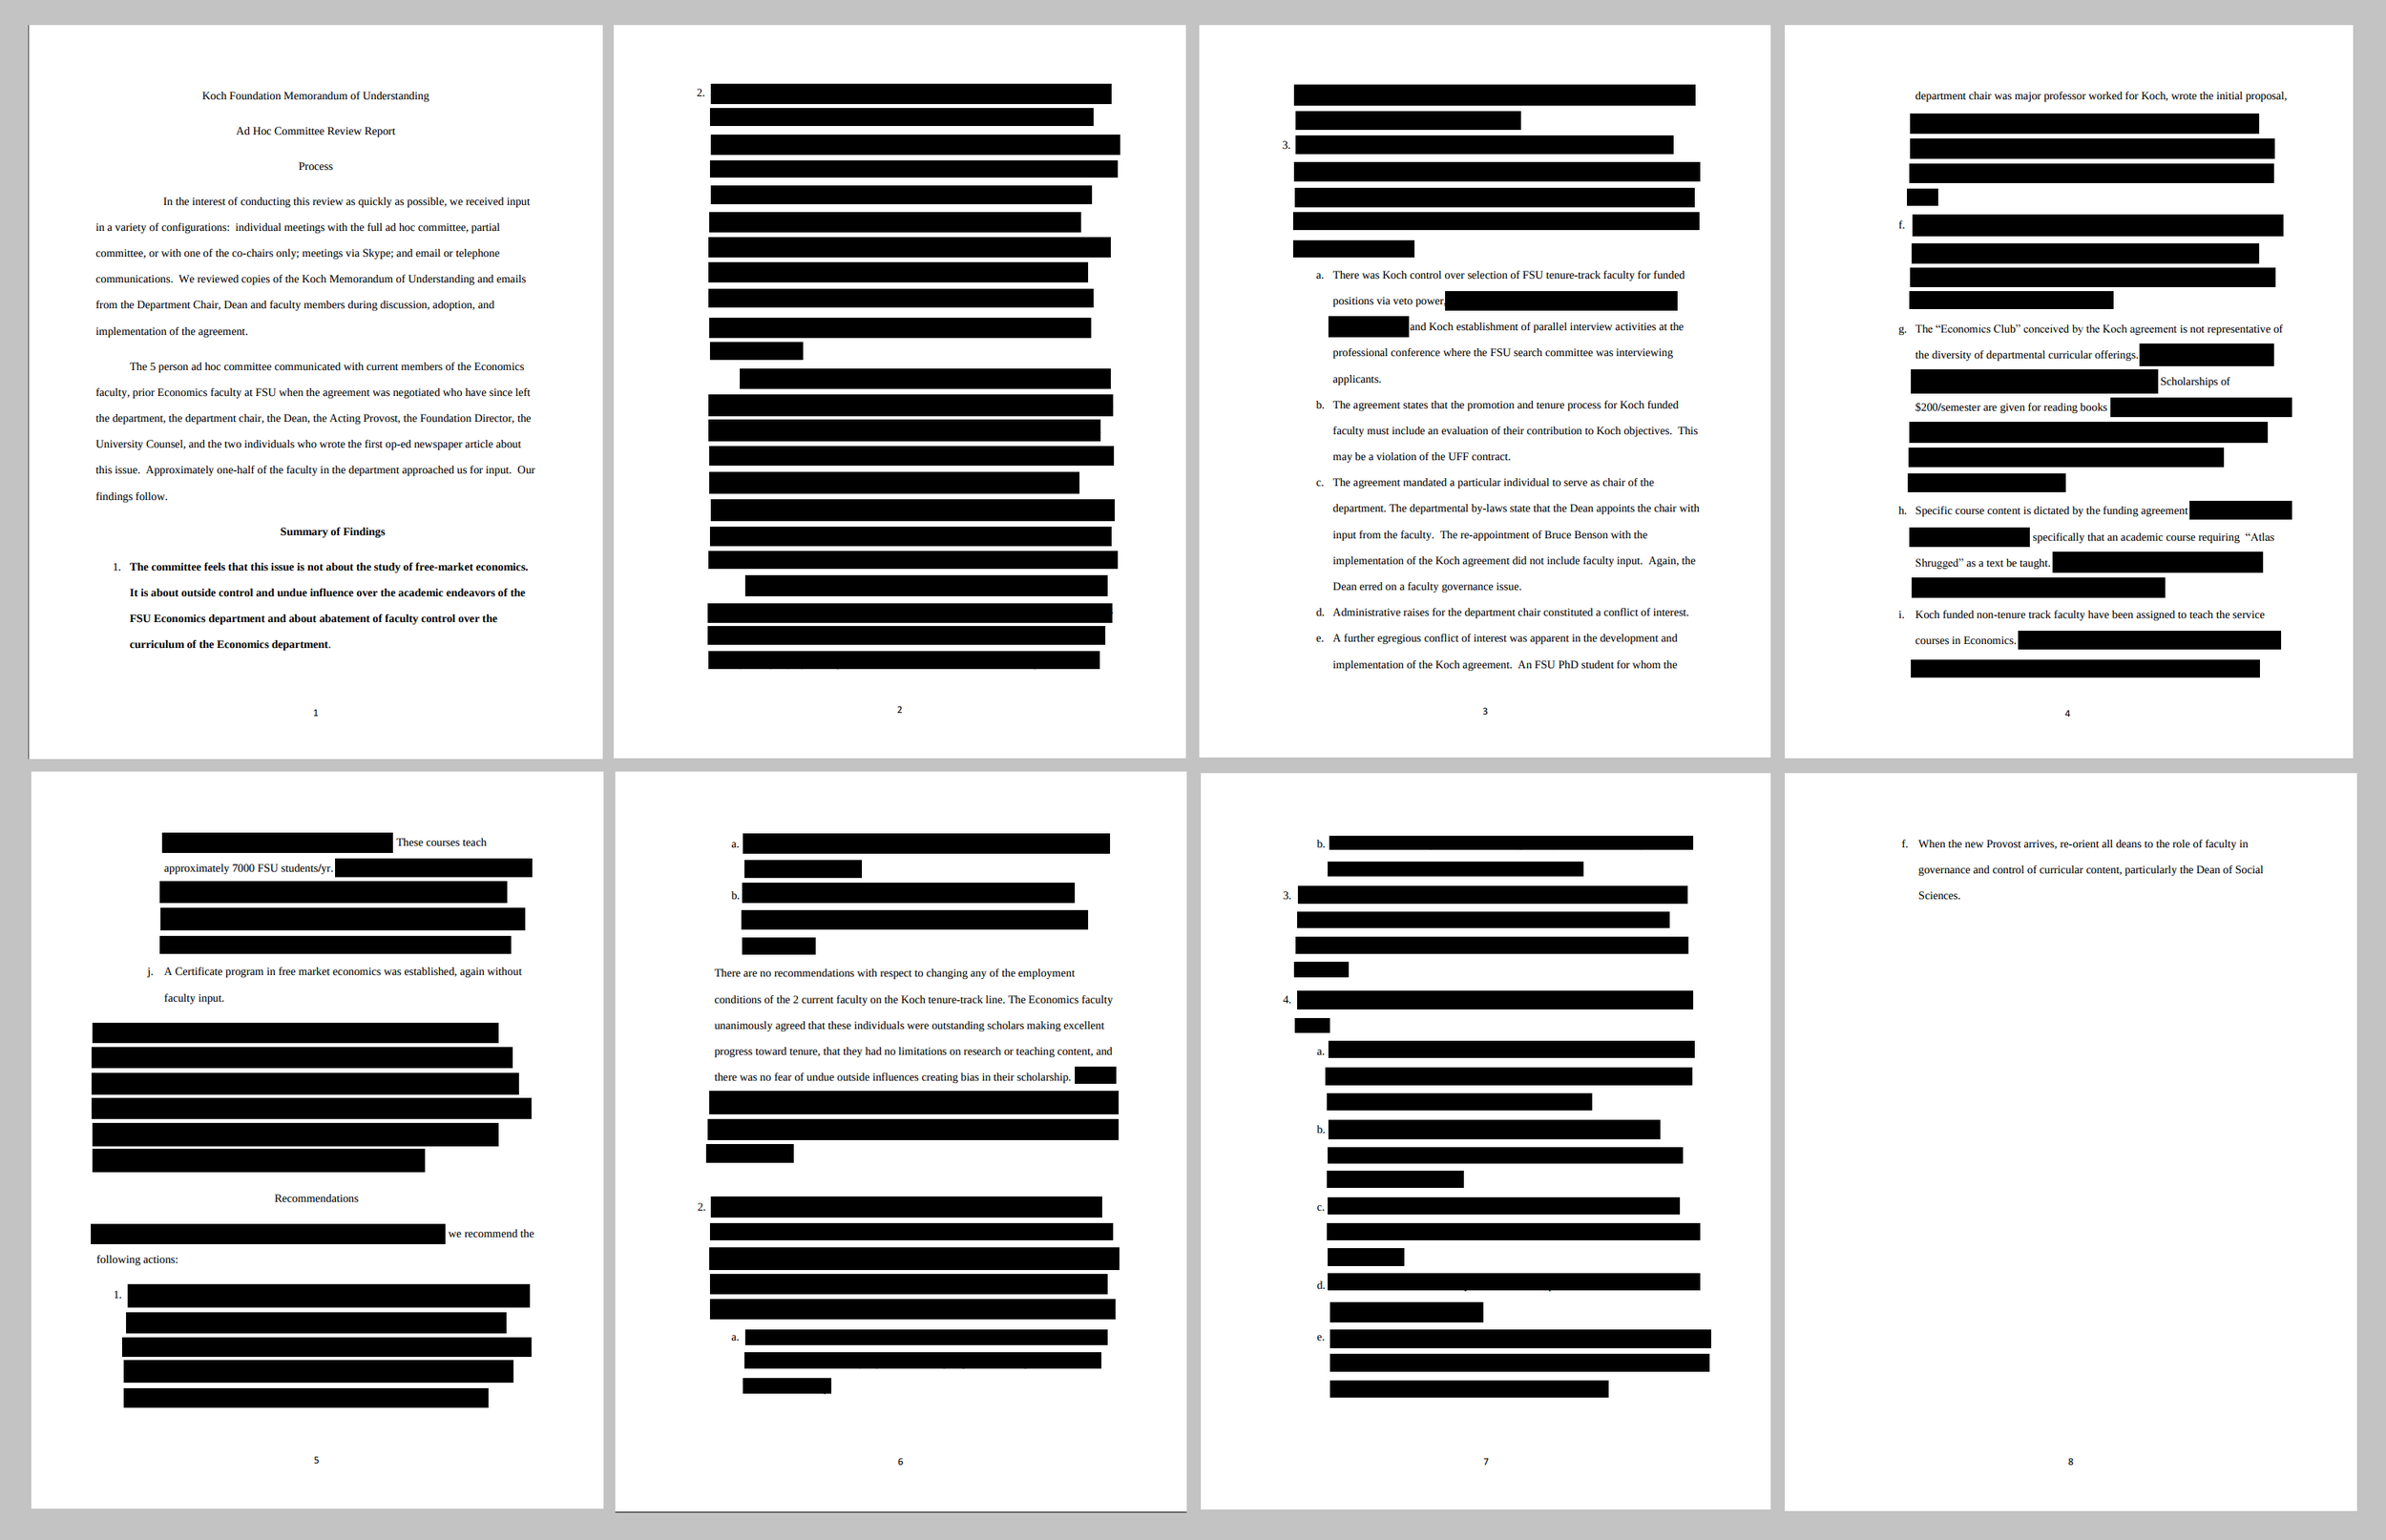 Most of the original 2011 faculty investigation was suppressed. We have blacked-out the portions that were omitted entirely.  Click here to zoom in and read them .